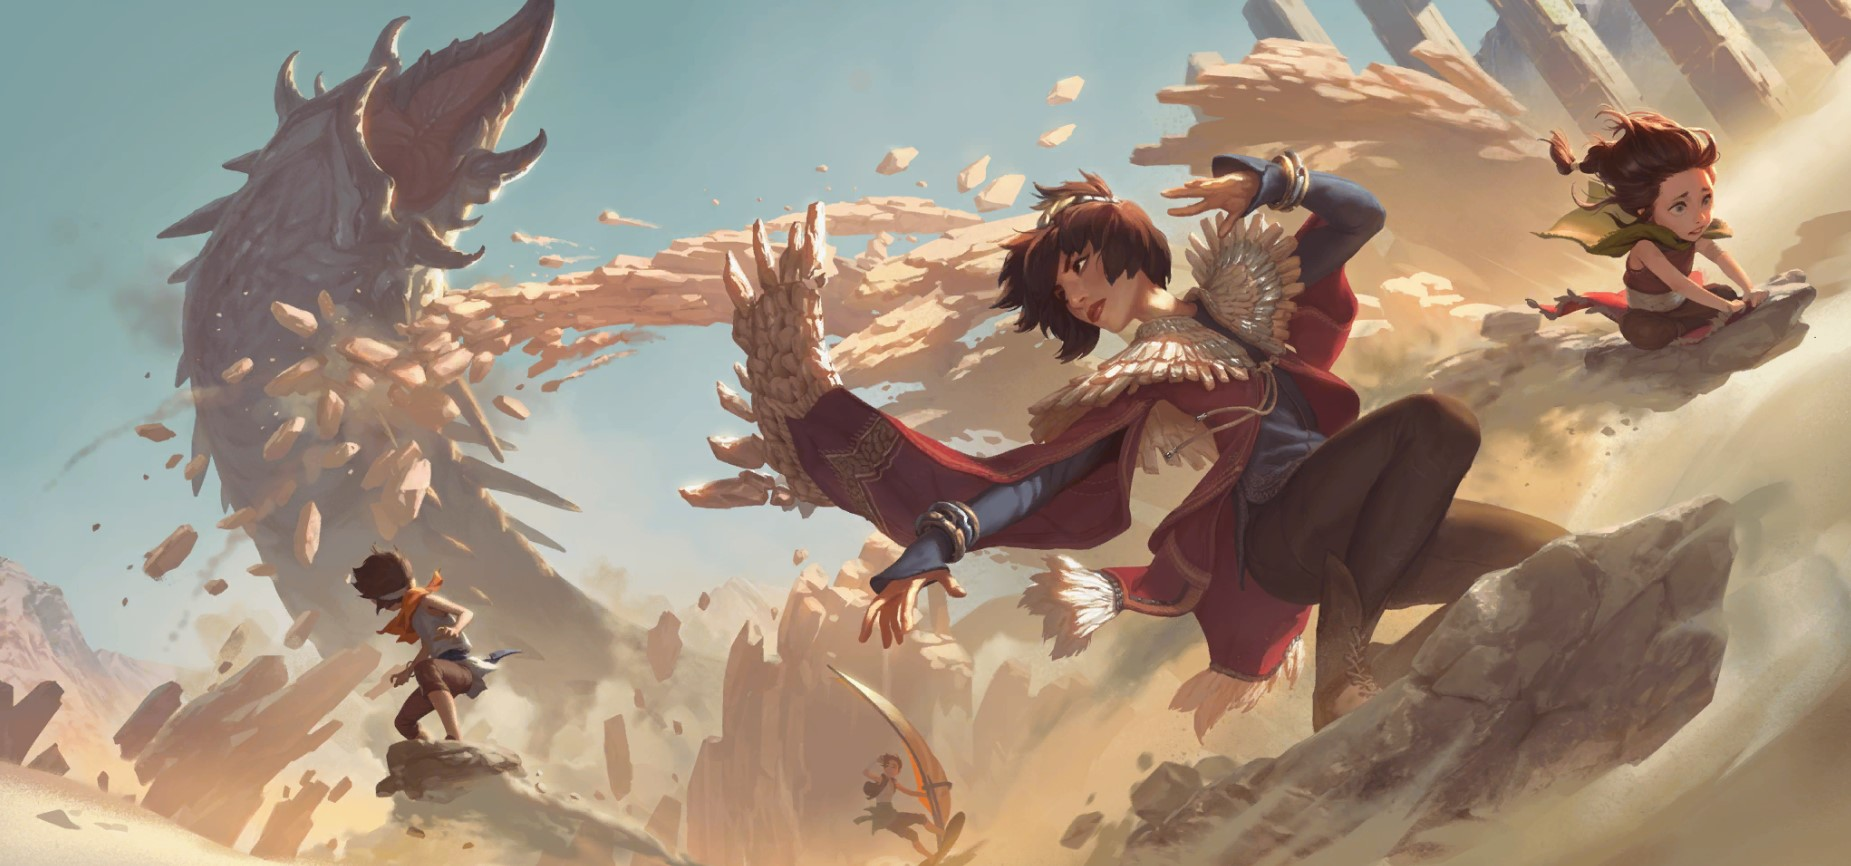 Empires of the Ascended LoR Card Impressions: Taliyah (Stoneweaving, Rock Hopper, and More)